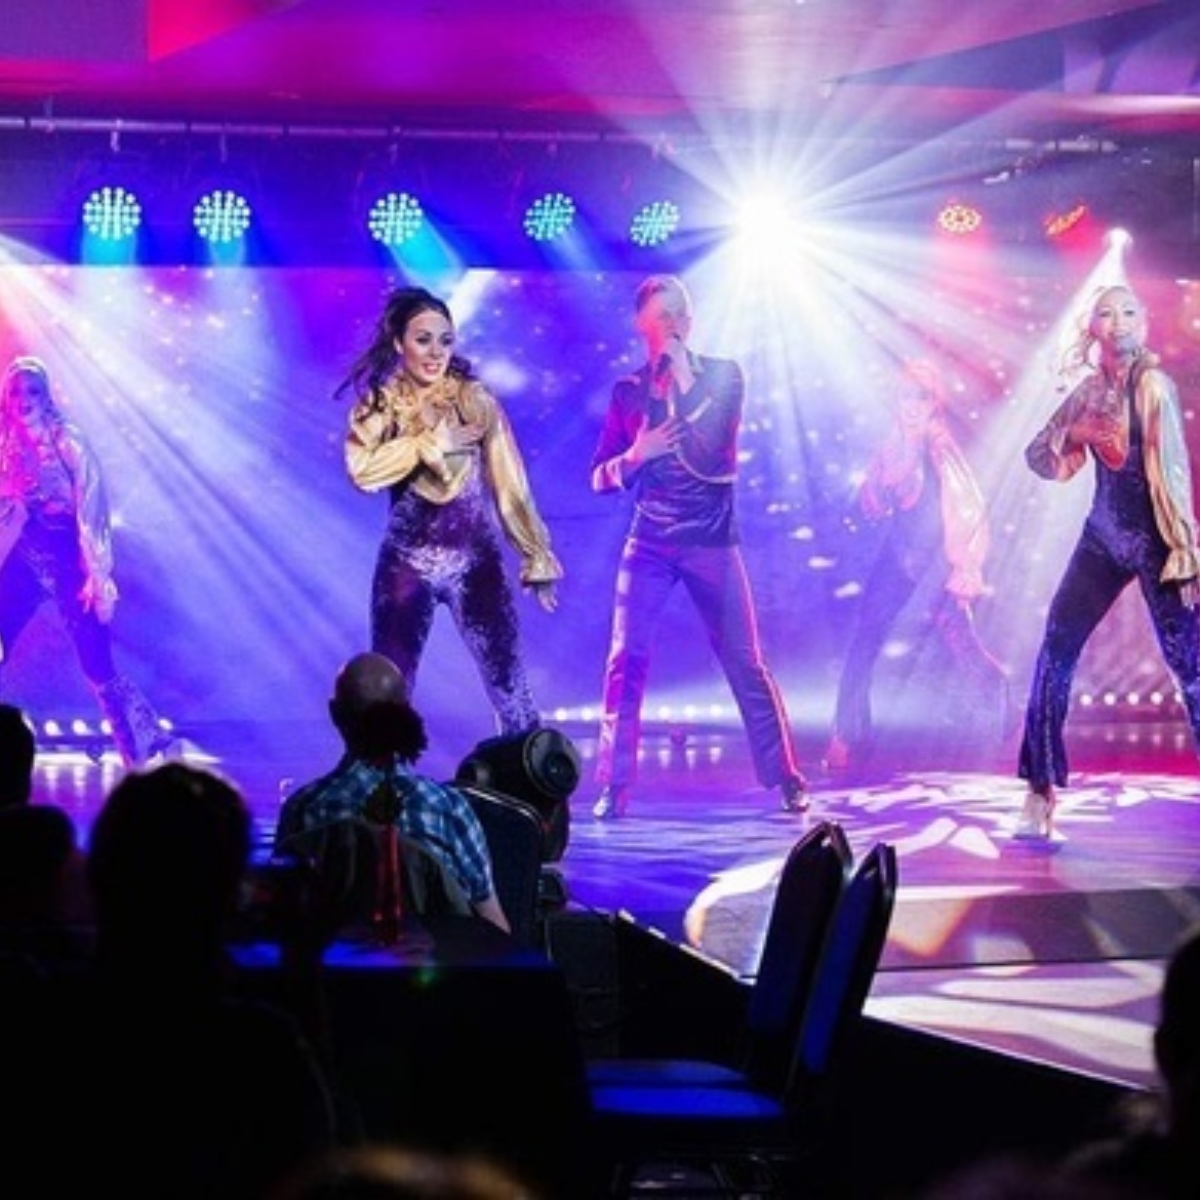 Viva Voulez Vous! A celebration of the music of ABBA Images